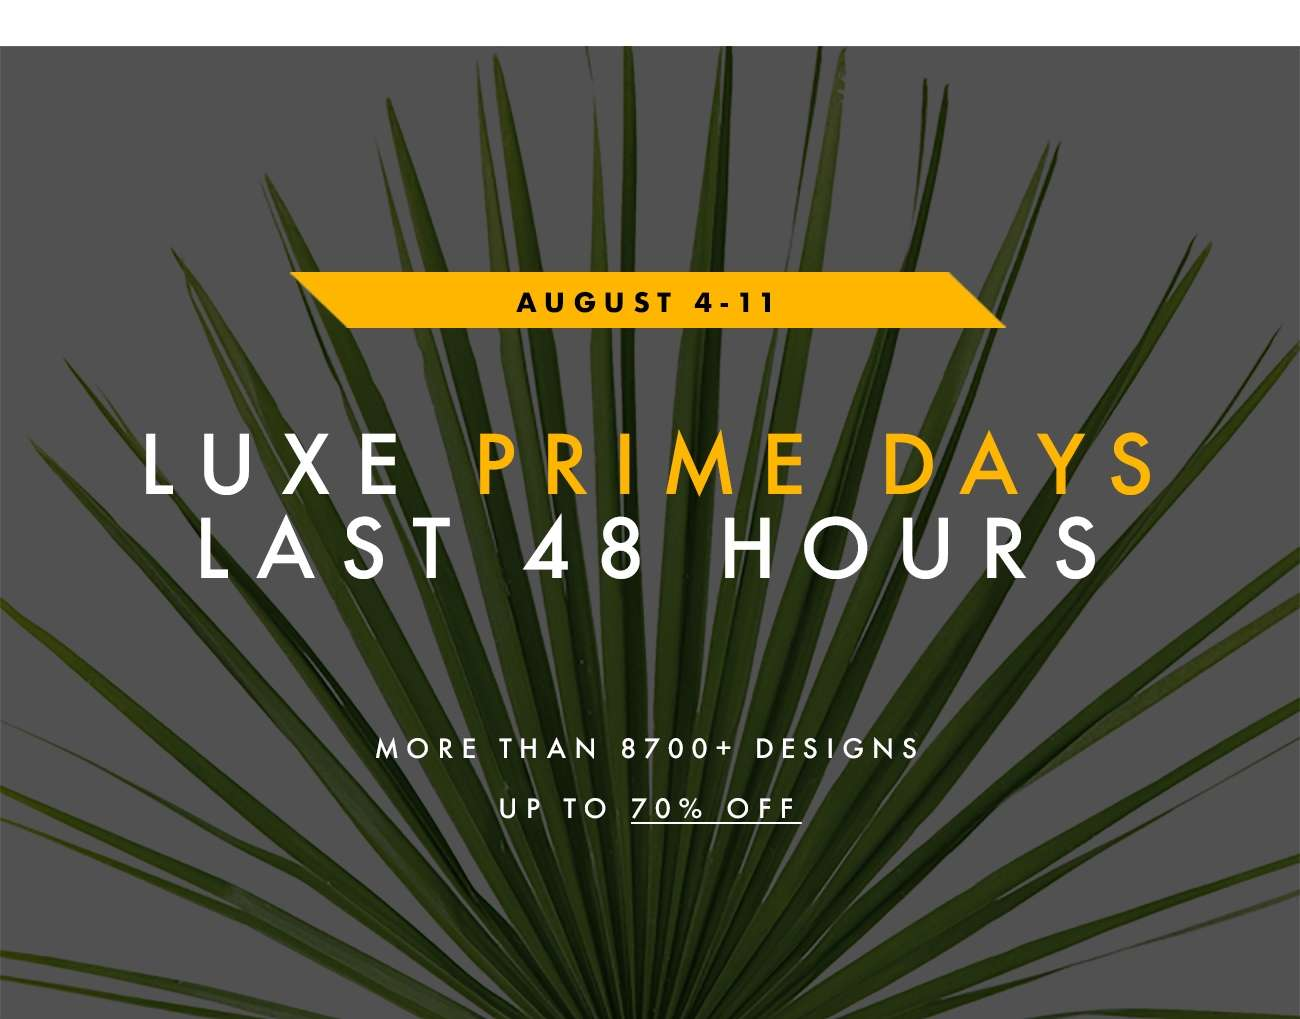 VIP PRIME DAYS - MORE THAN 8700+ DESIGNS  UP TO 70% OFF